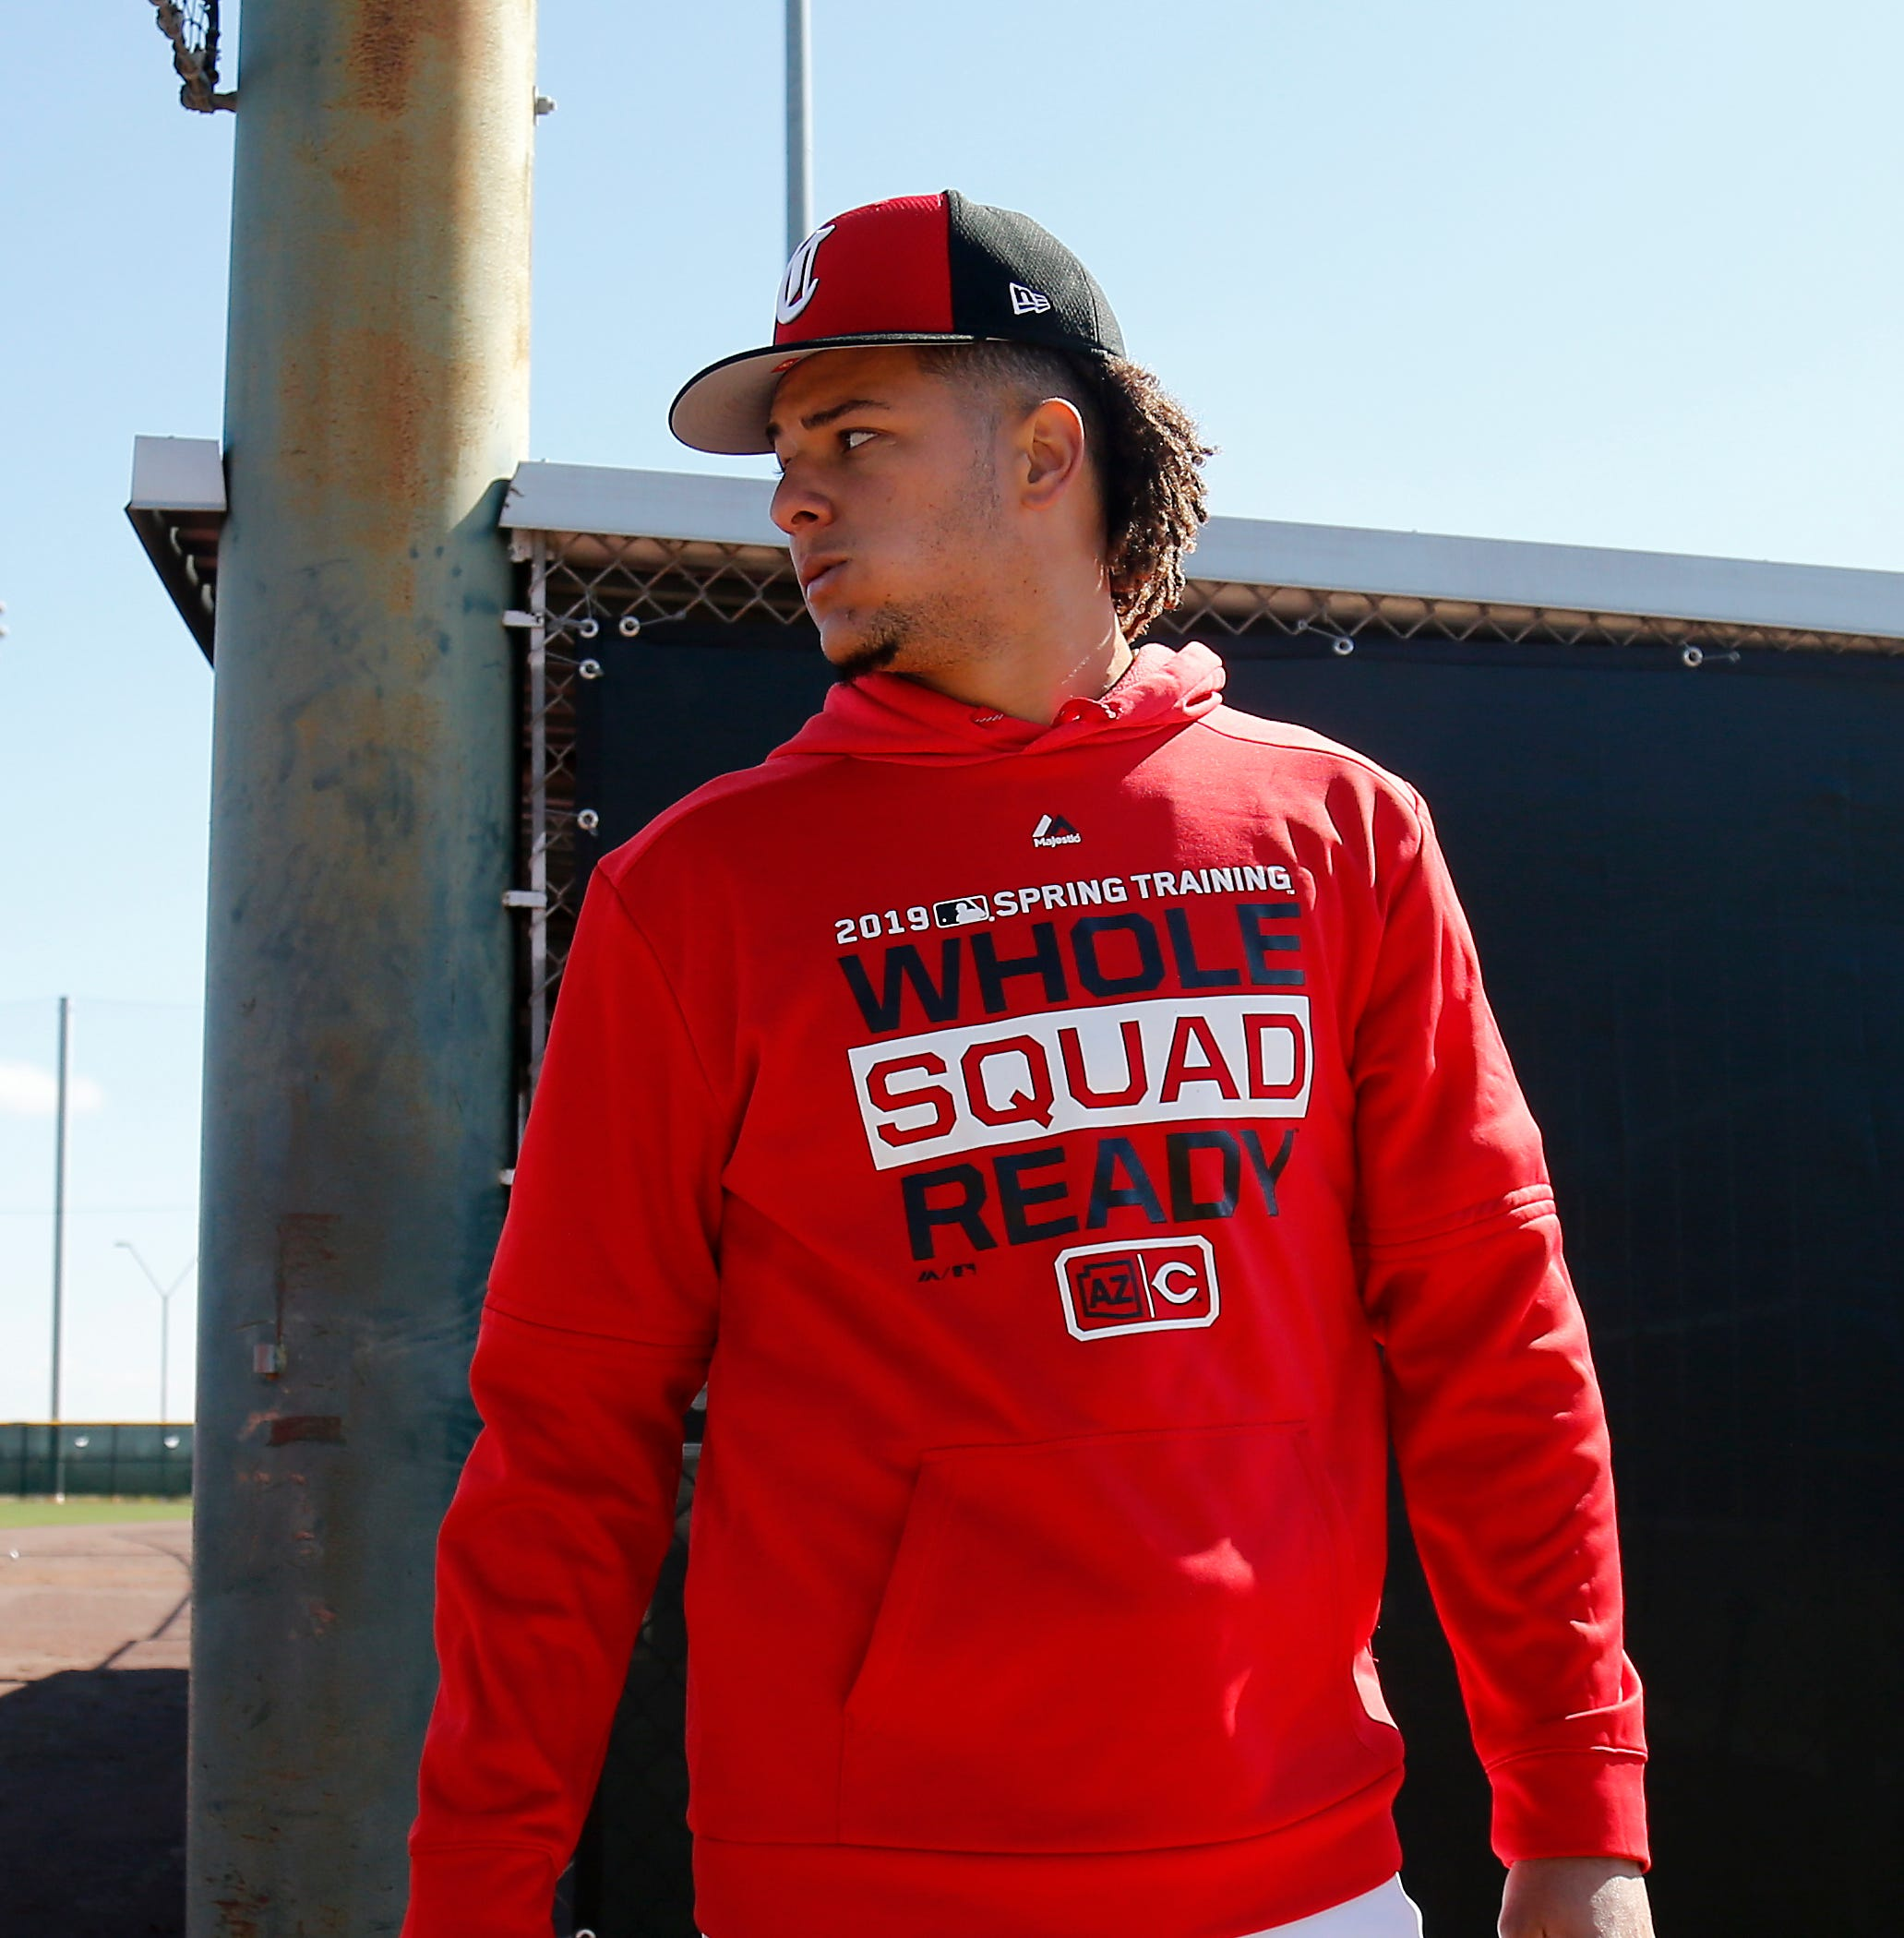 Cincinnati Reds pitchers hit around in 11-3 spring training loss to Seattle Mariners